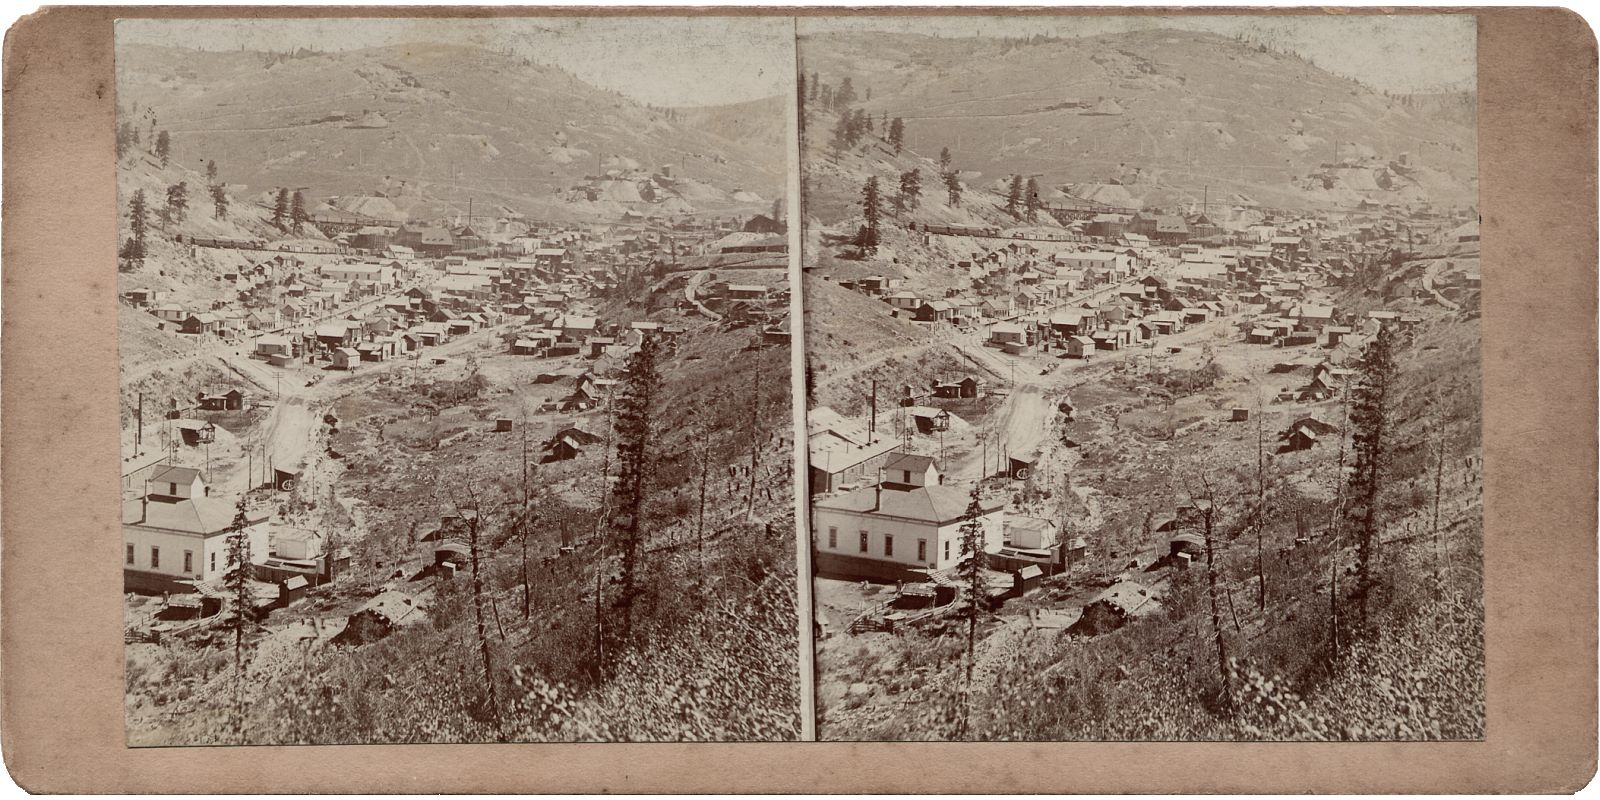 This view from an unmarked Stereoview is showing the town of Anaconda with the School House and part of the Hartzell Mill in the foreground left. In the background is Gold hill and some of its mines, while the town itself is located near the Anaconda mine. Anaconda mine is about 1/3 down from the top and about middle-of-view in the left/right direction. About halfway up on the left side is the Ore-house of the Blue Bell mine just above the school house cupola.